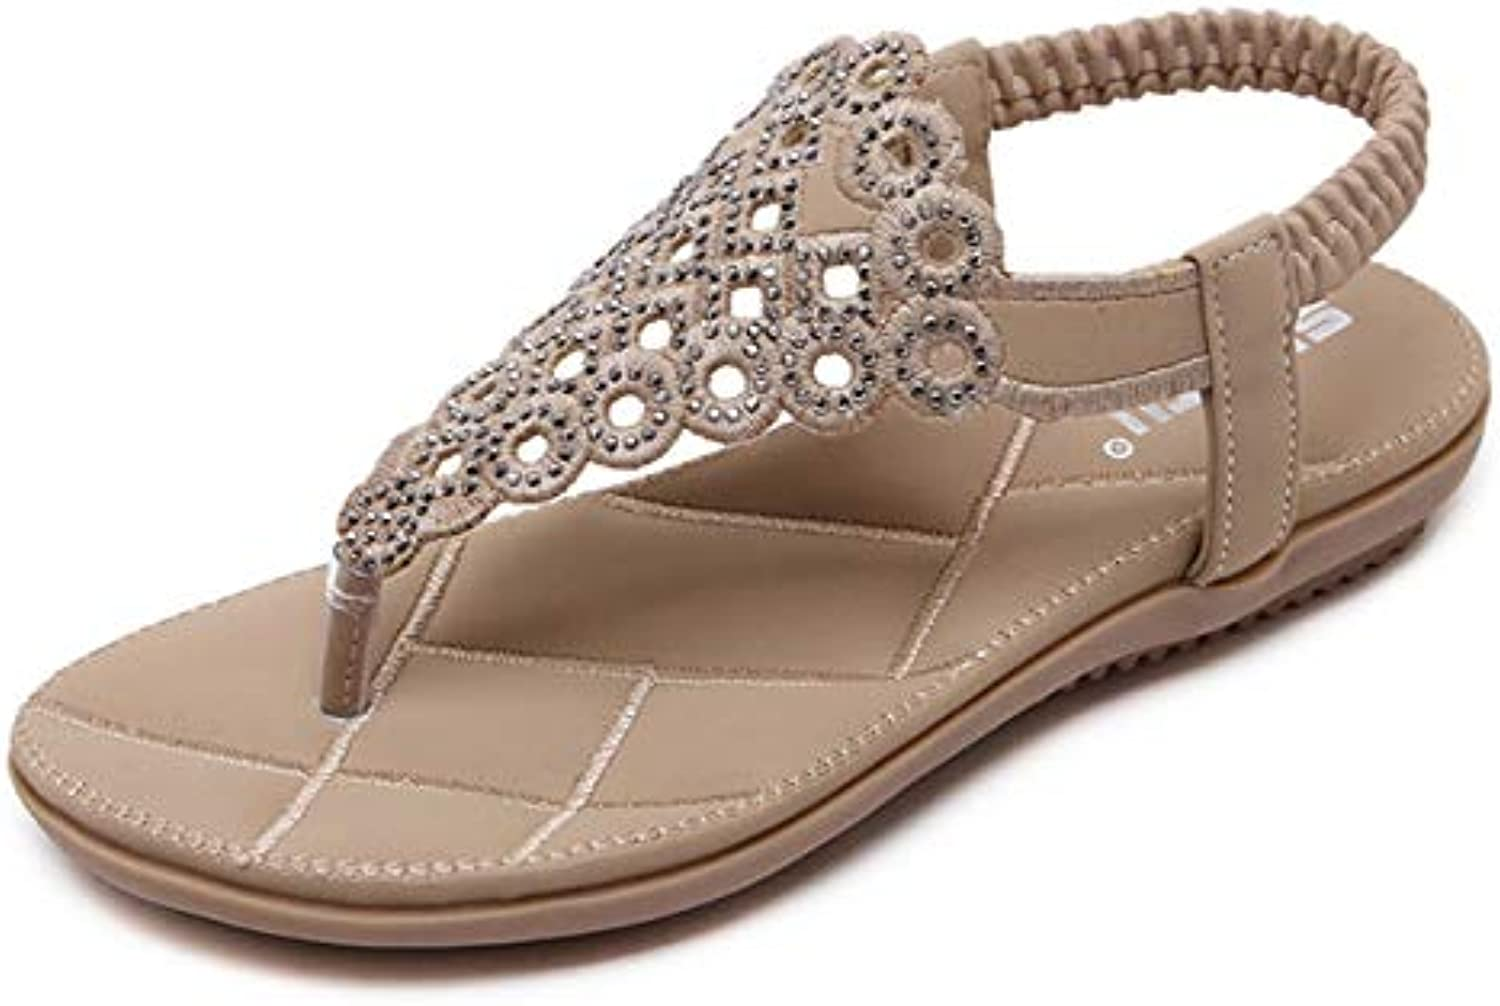 Women's Flat Low Sandals, Summer Beach shoes Large Size Casual Flip-Flops, Bohemian Rhinestone Decoration, Suitable for Daily Wear, Home, Vacation